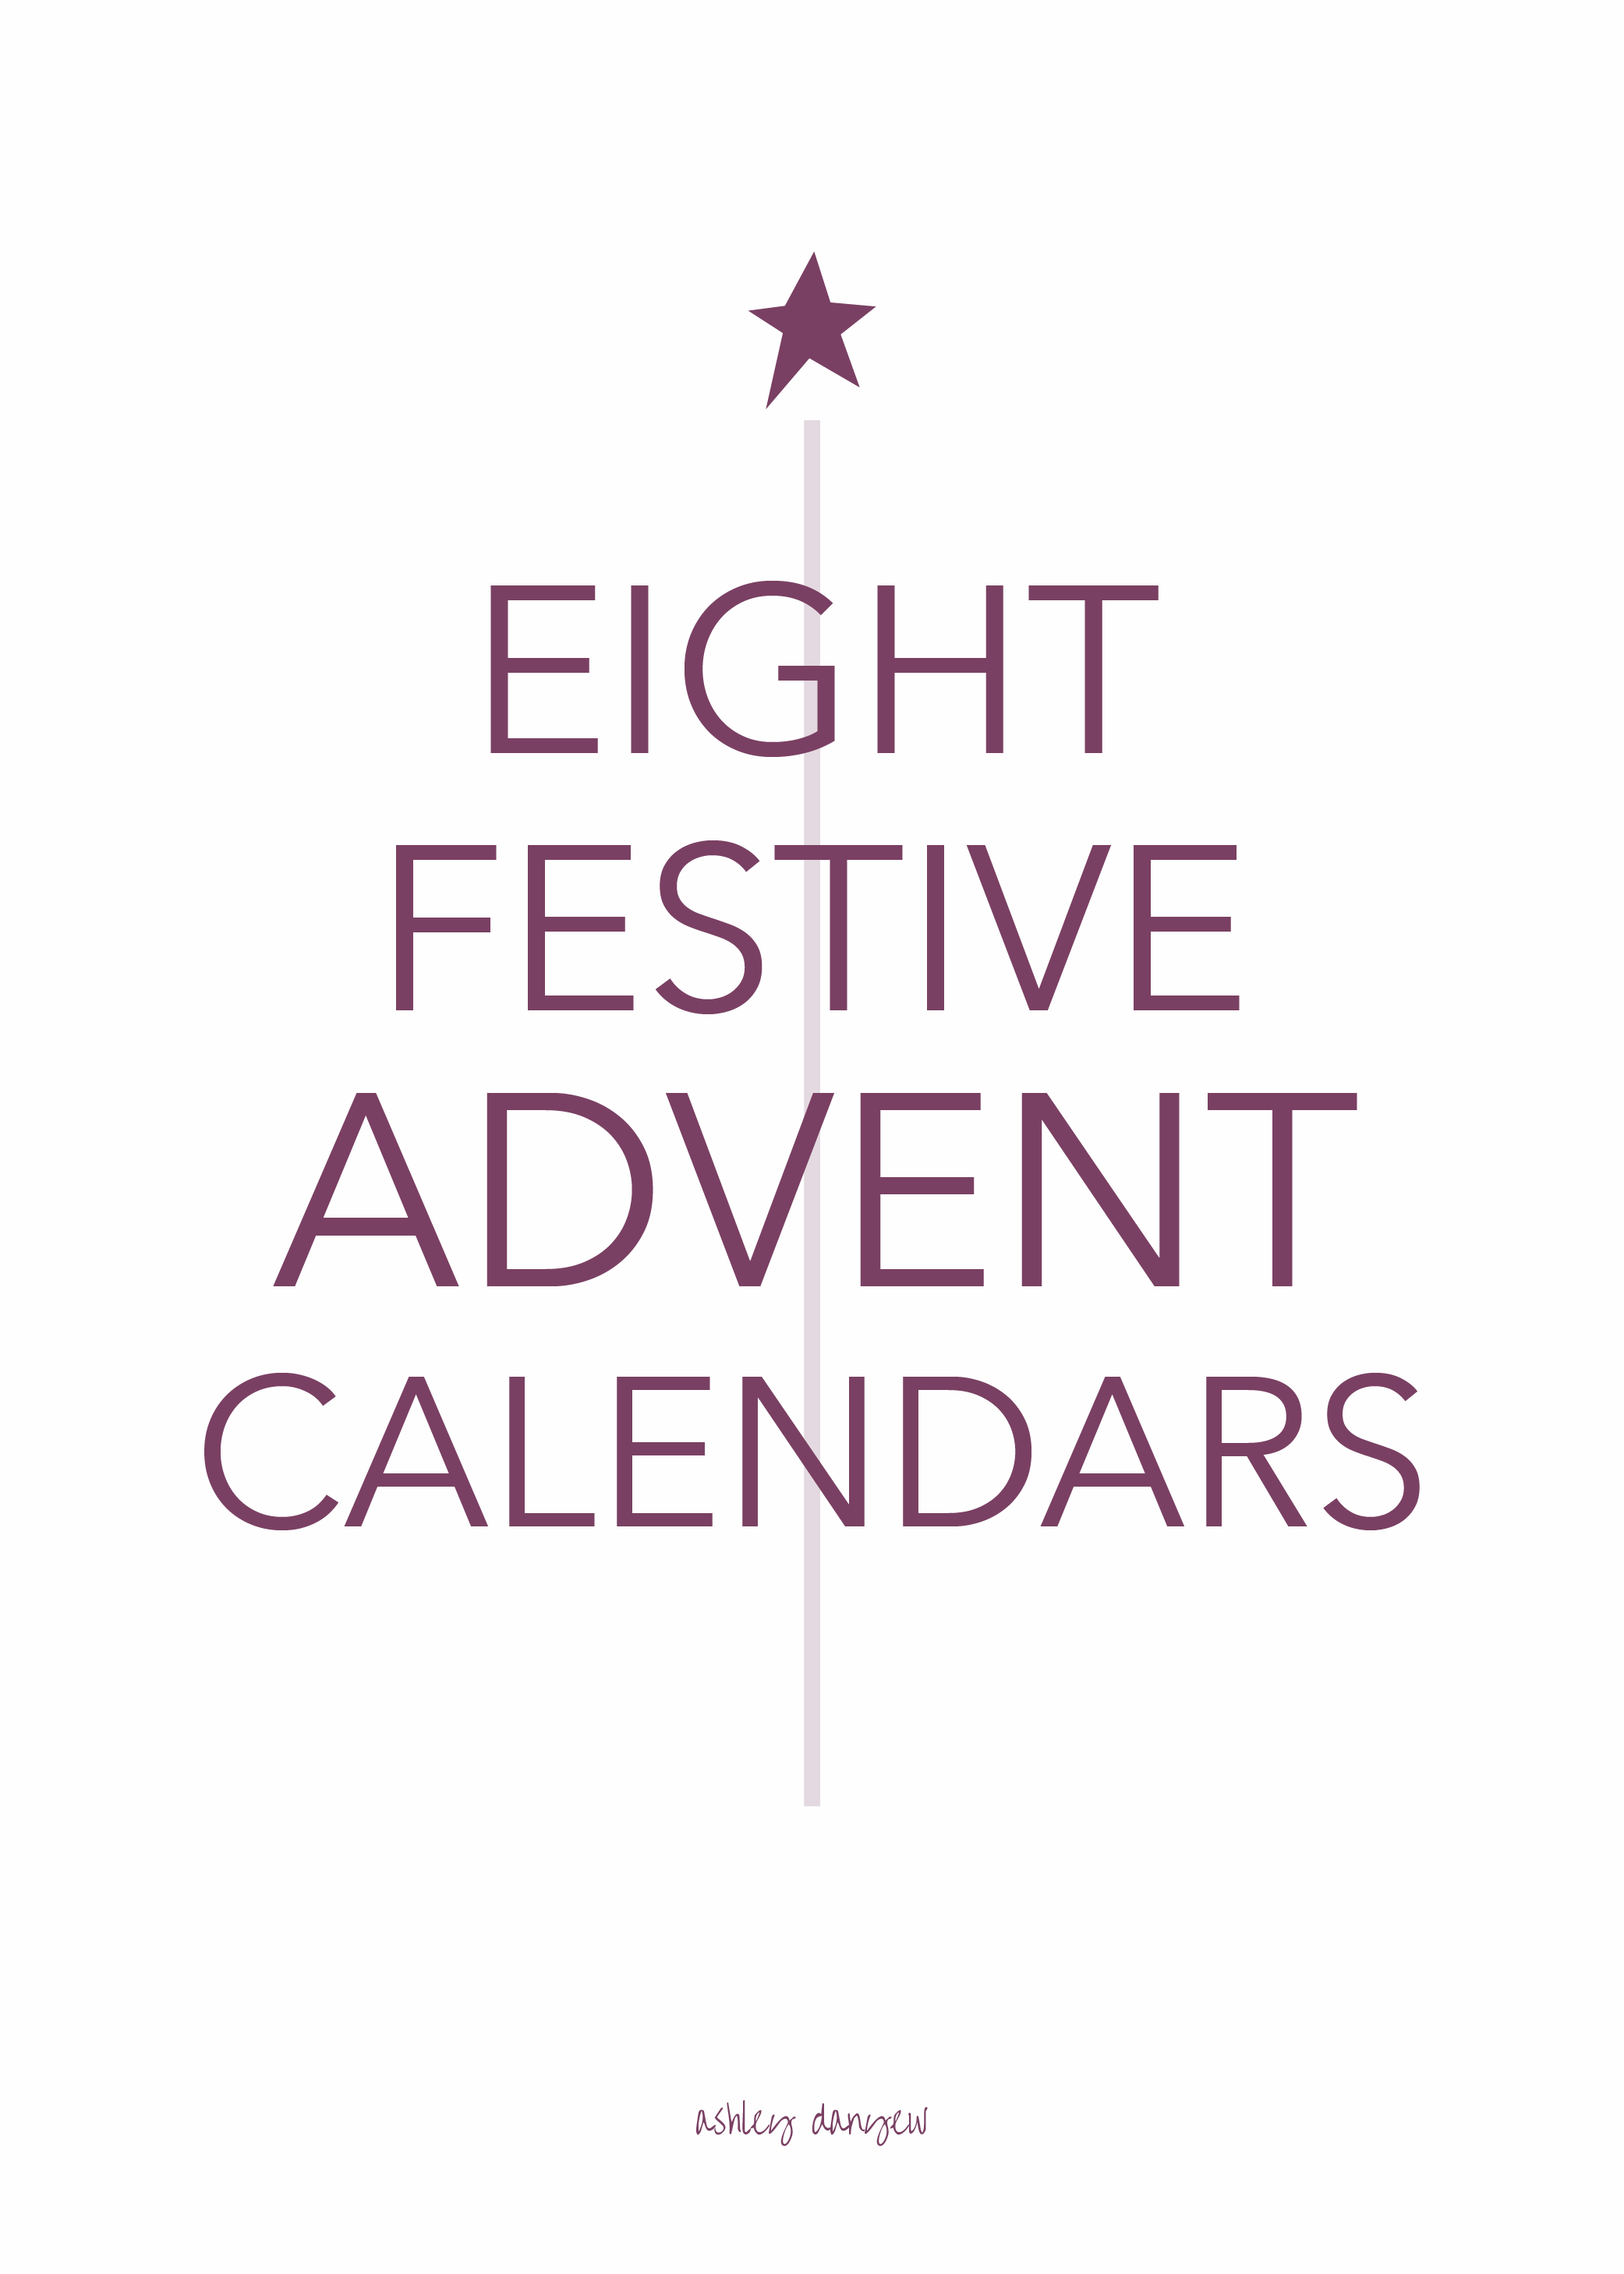 Eight-Festive-Advent-Calendars-01.png